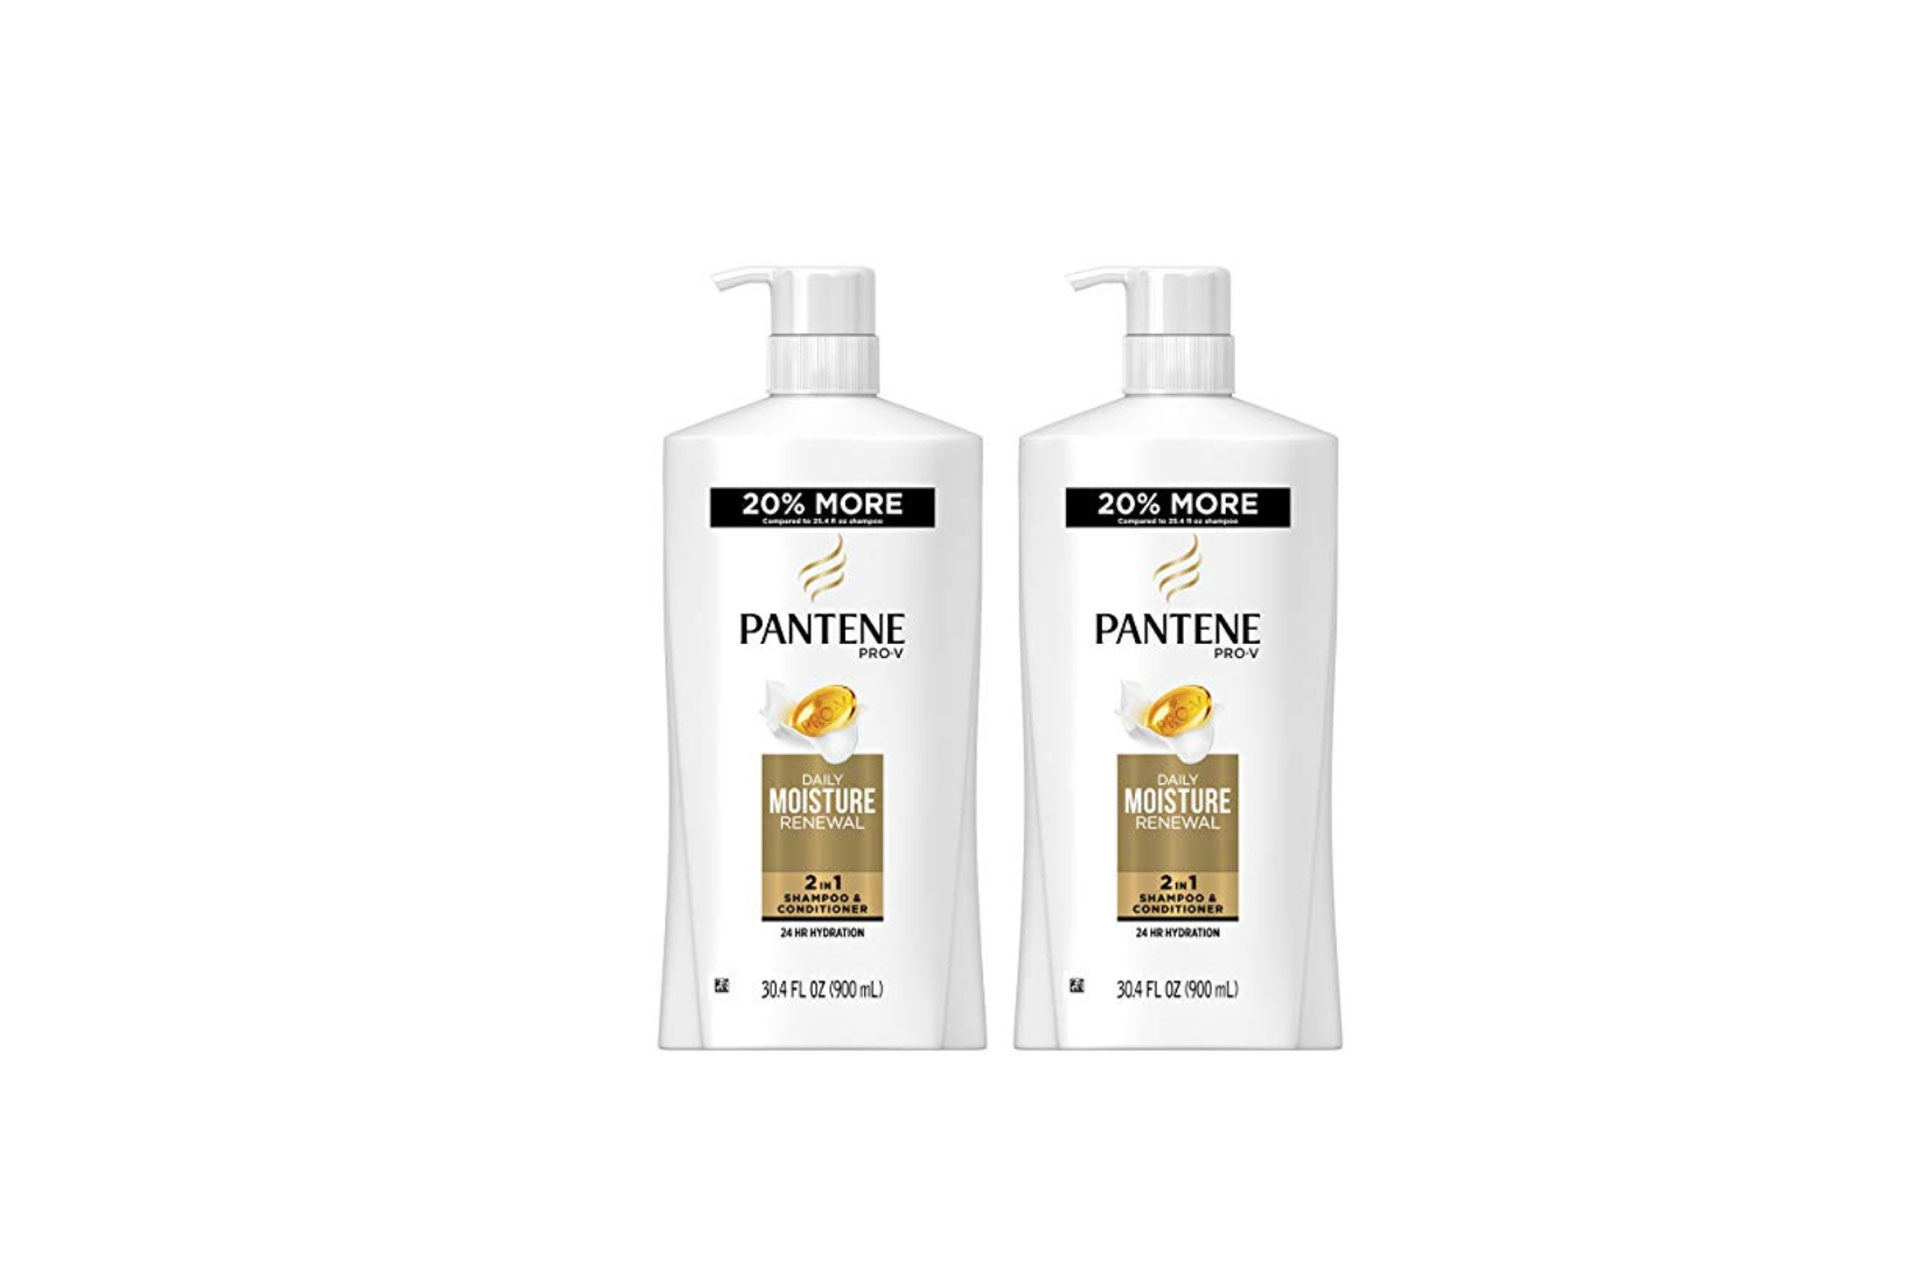 Pantene Shampoo; Courtesy of Amazon